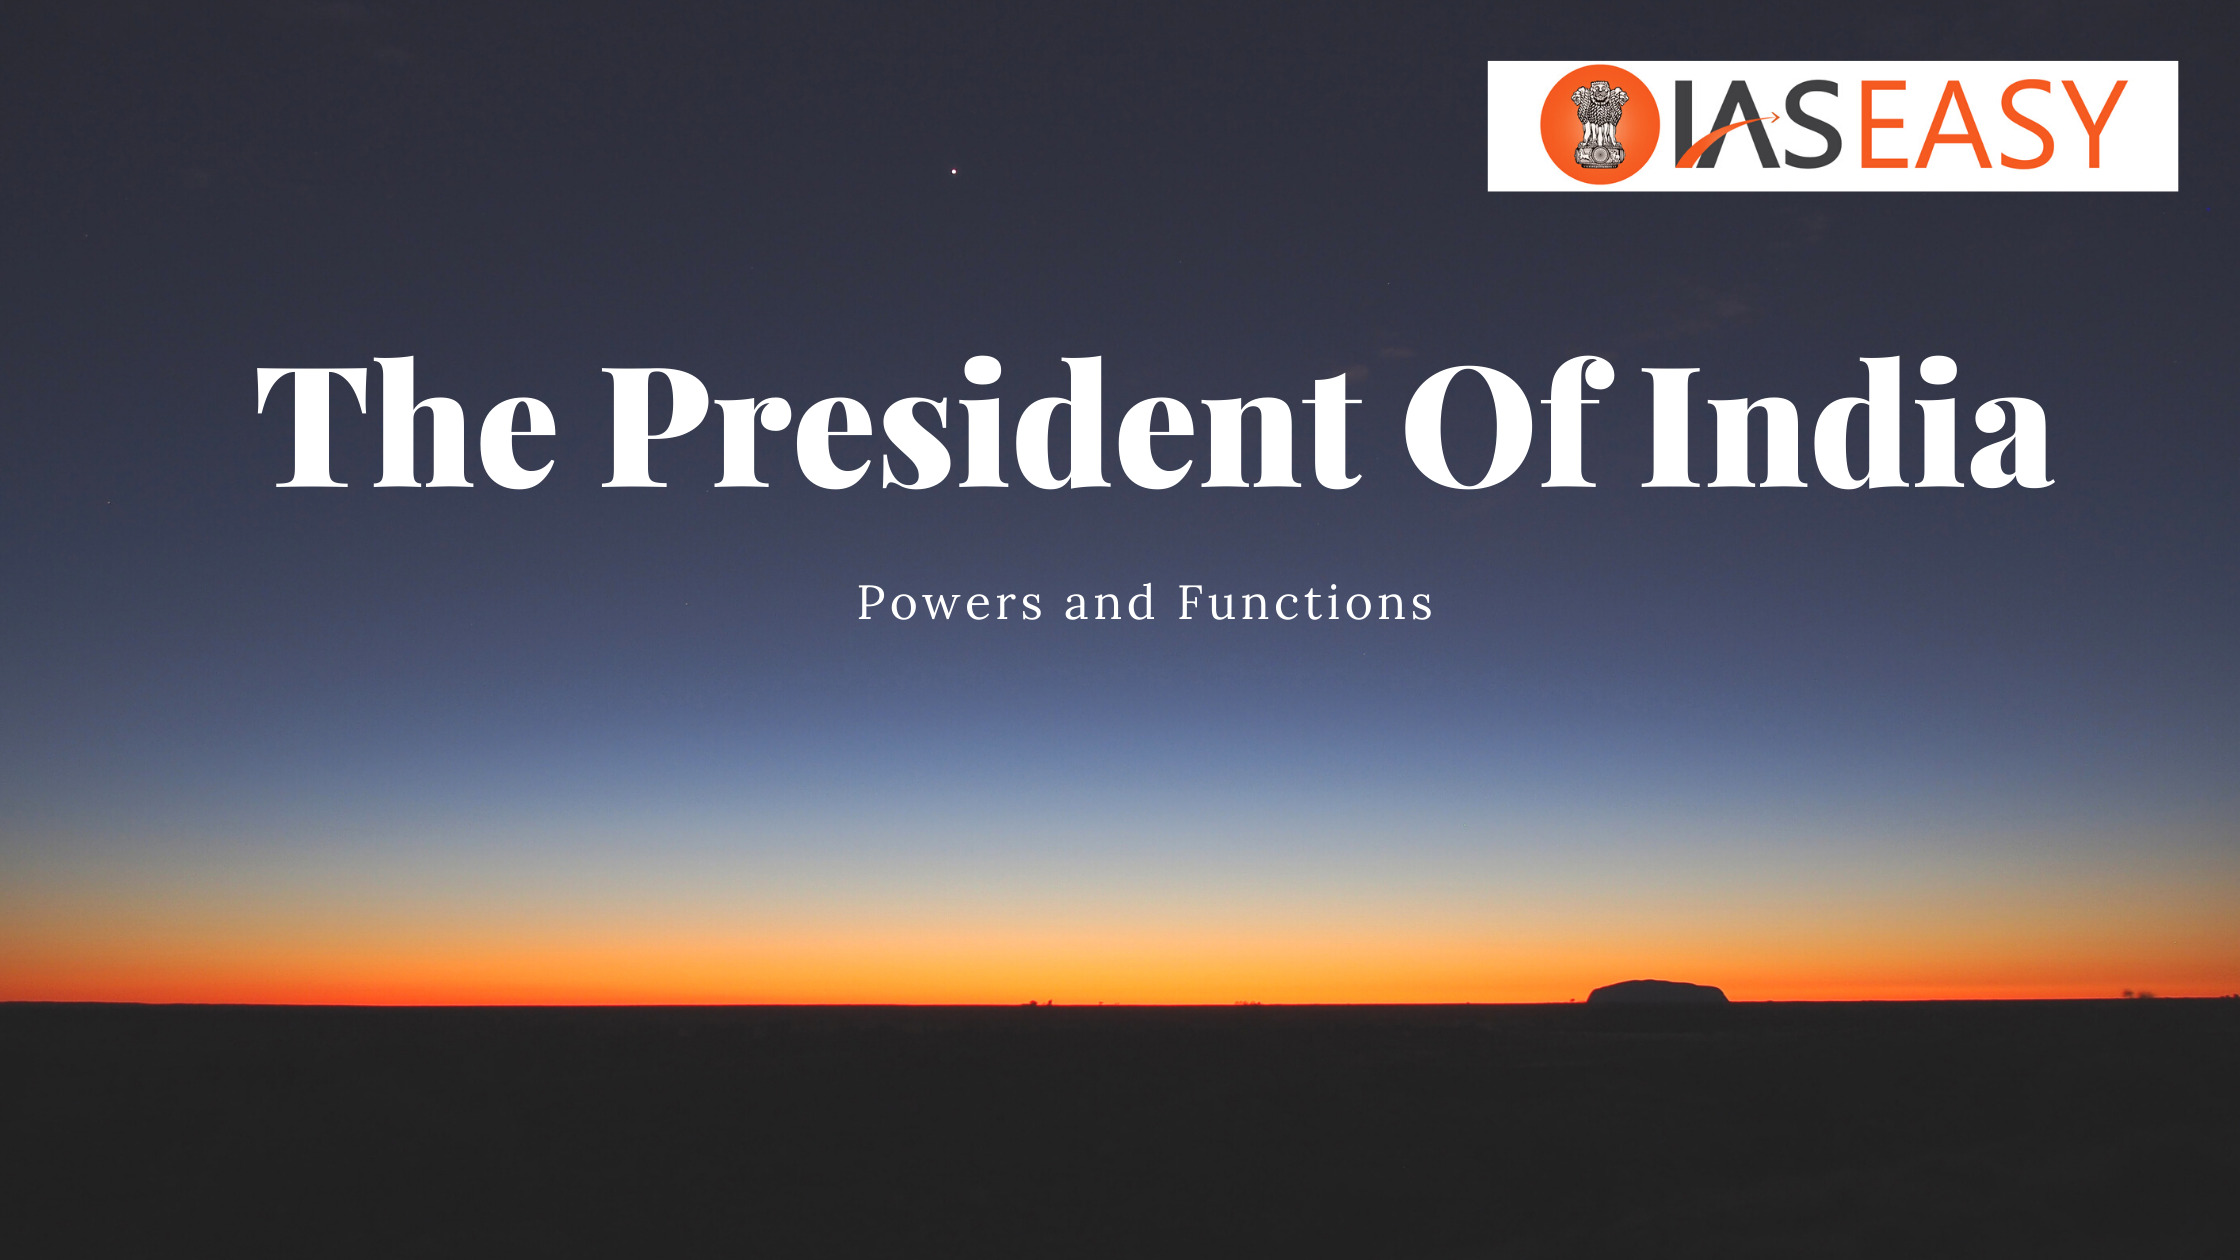 Powers and Functions of The President of India